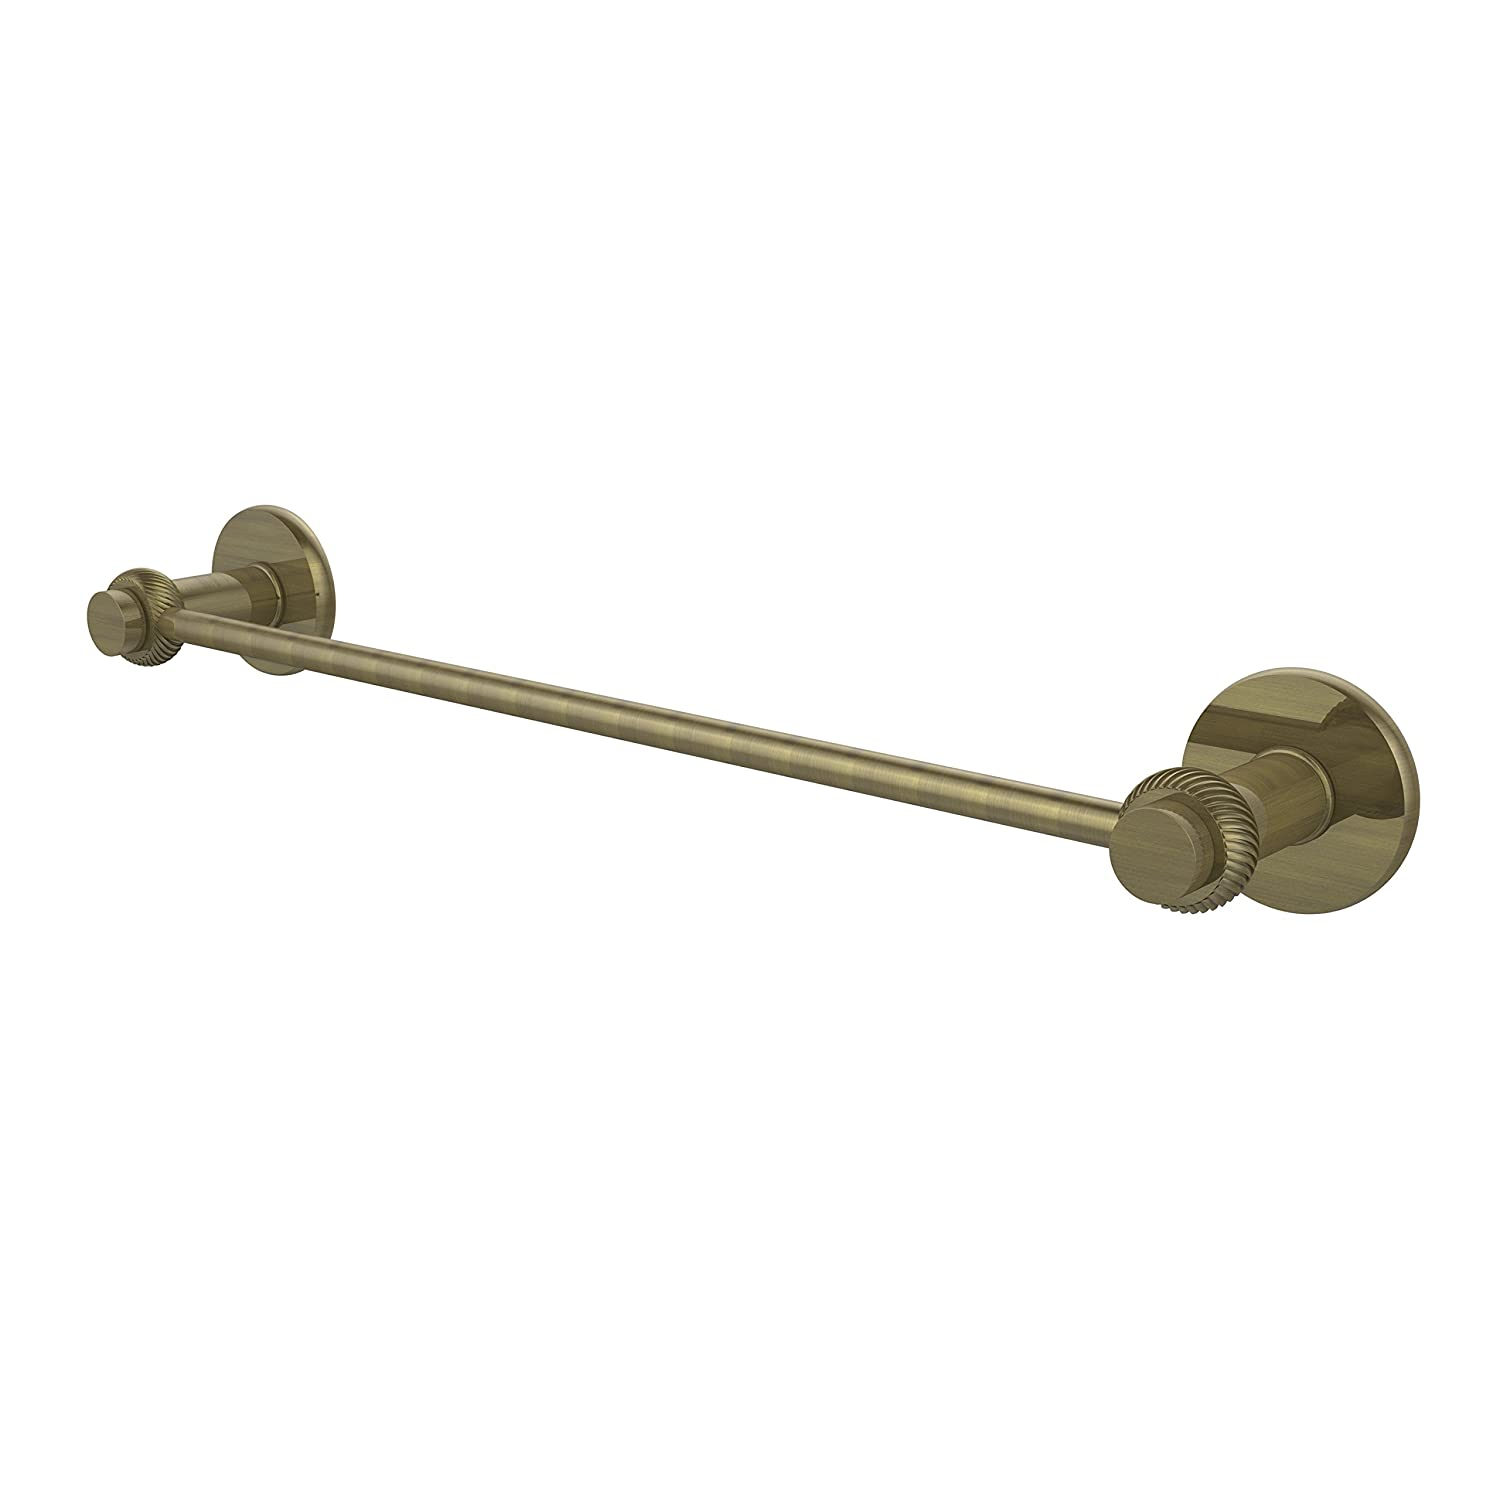 Allied Brass 931T/30-ABR Towel Bar, 30-Inch, Antique Brass by Allied Precision Industries B00Y39UFKY アンティーク真鍮 アンティーク真鍮